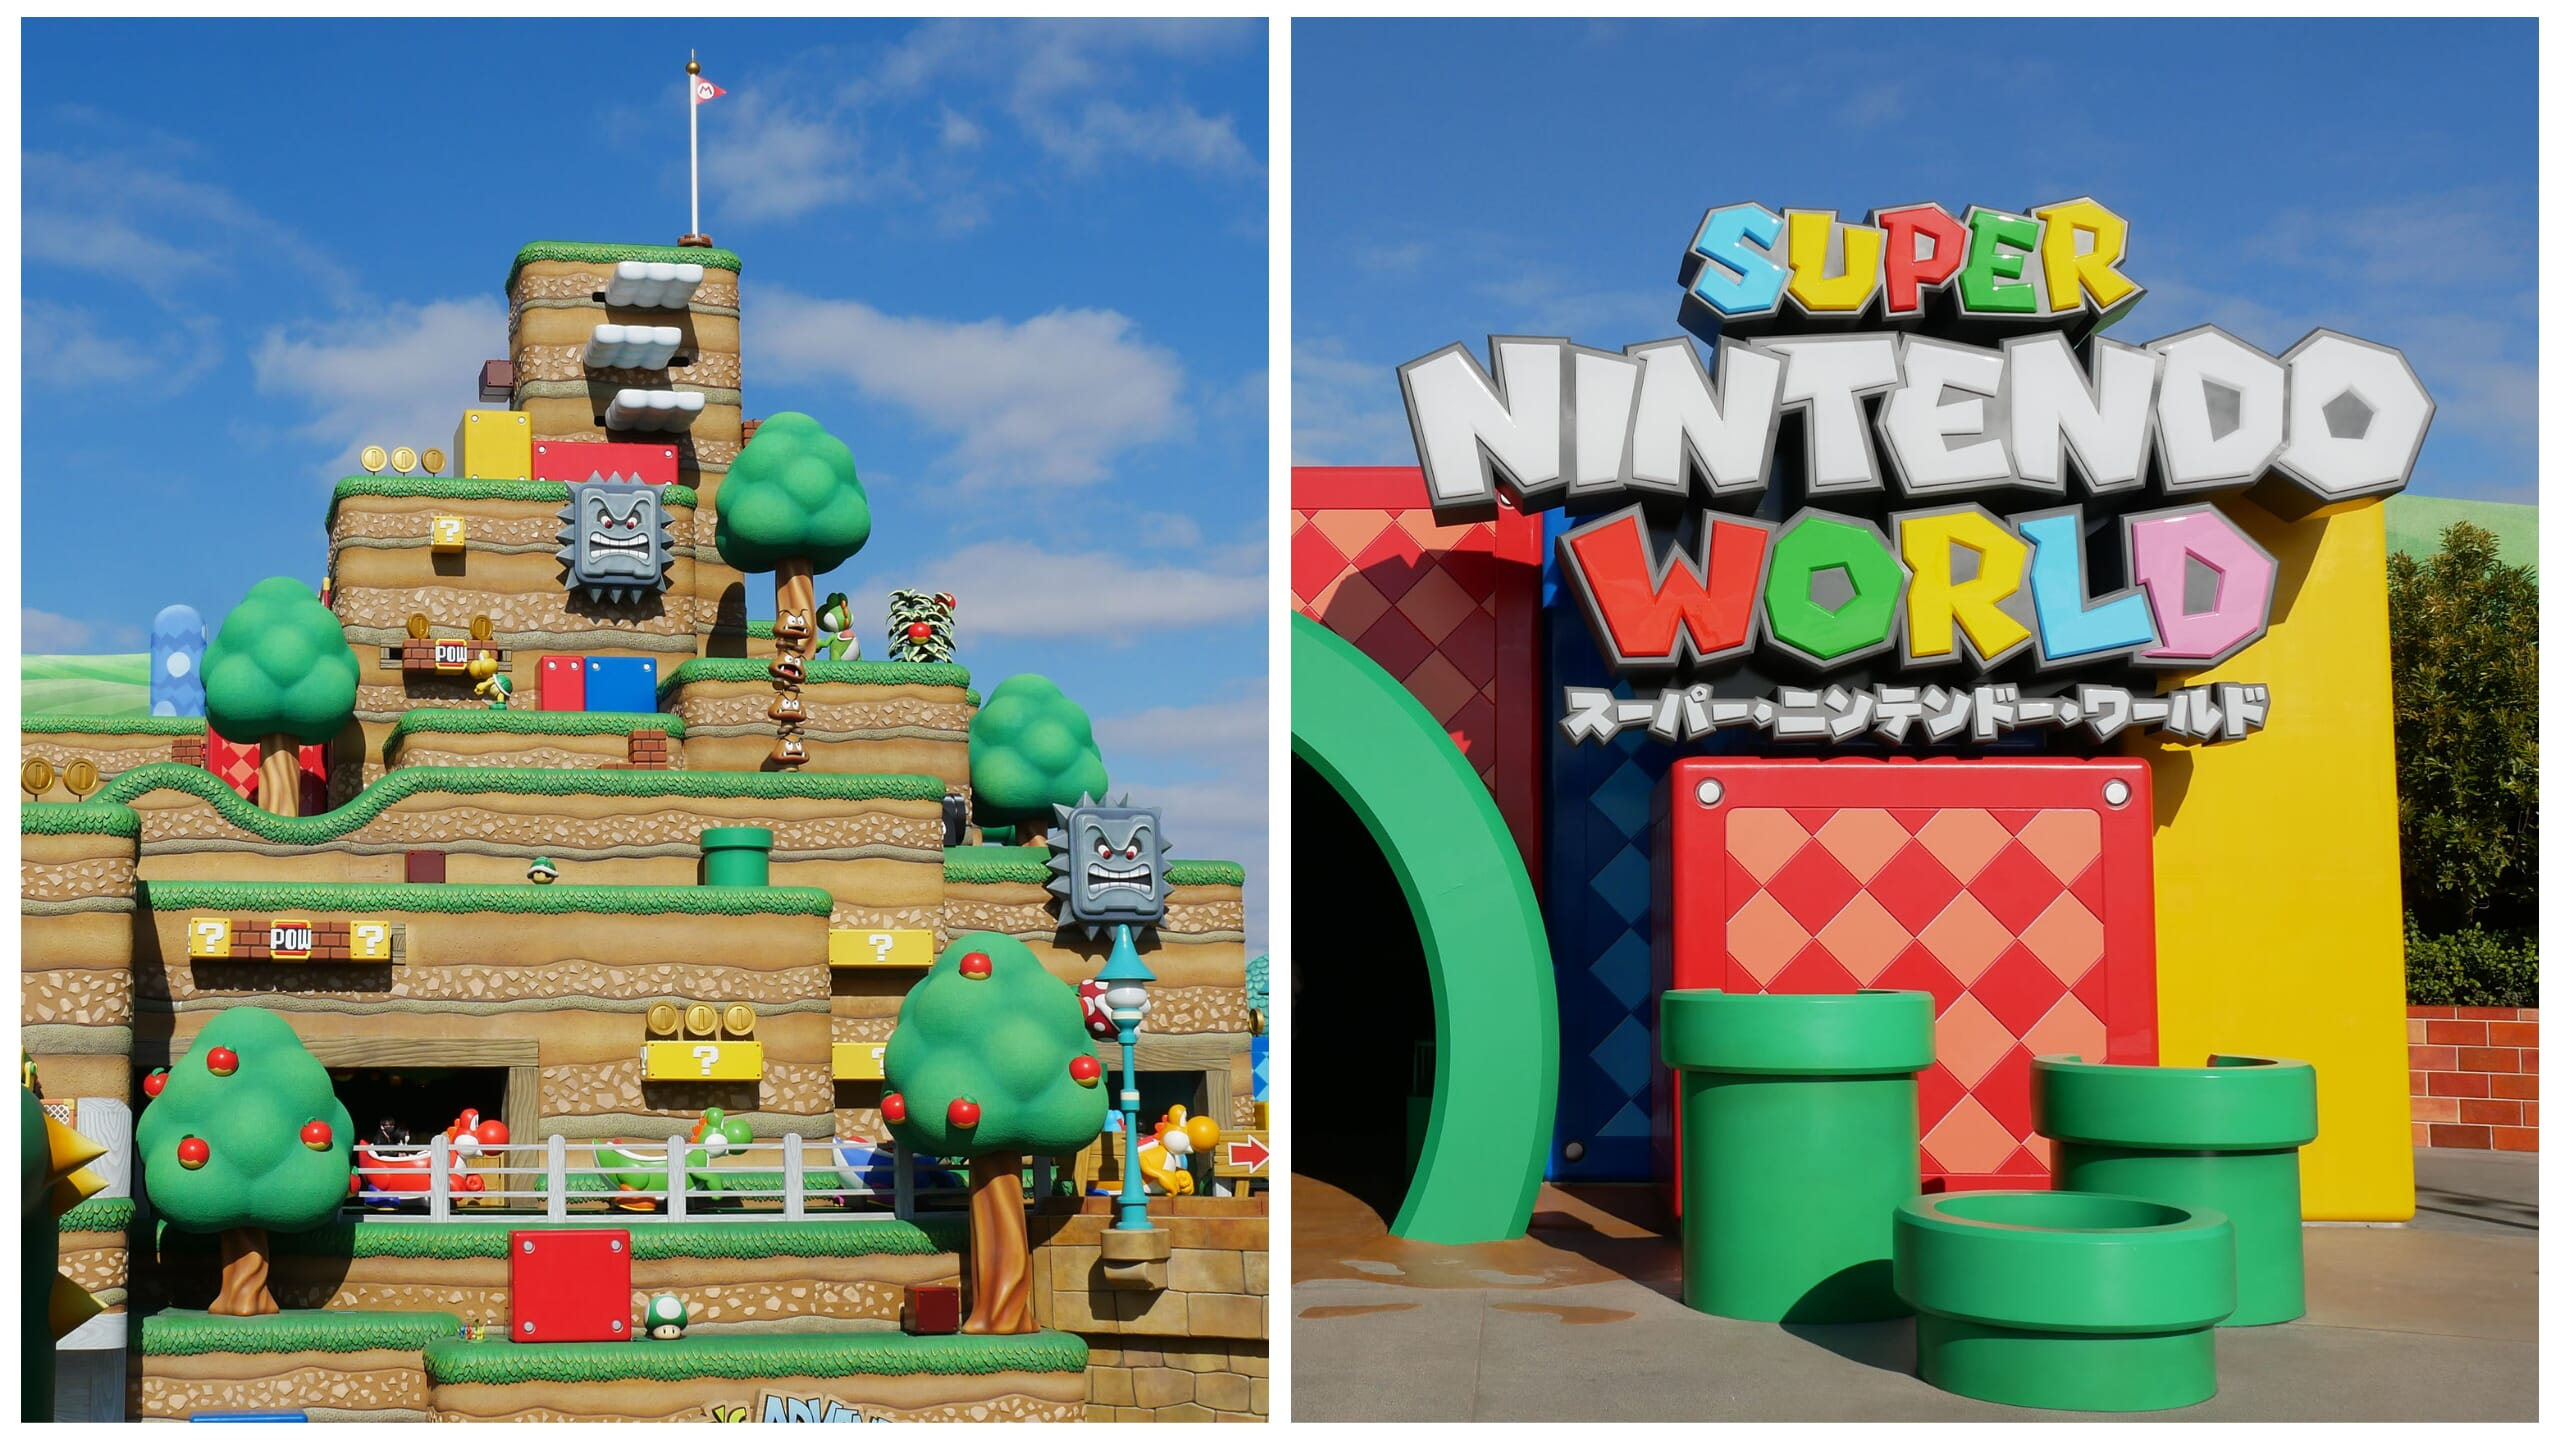 Super Nintendo World: A Short But Sweet YouTube Tour